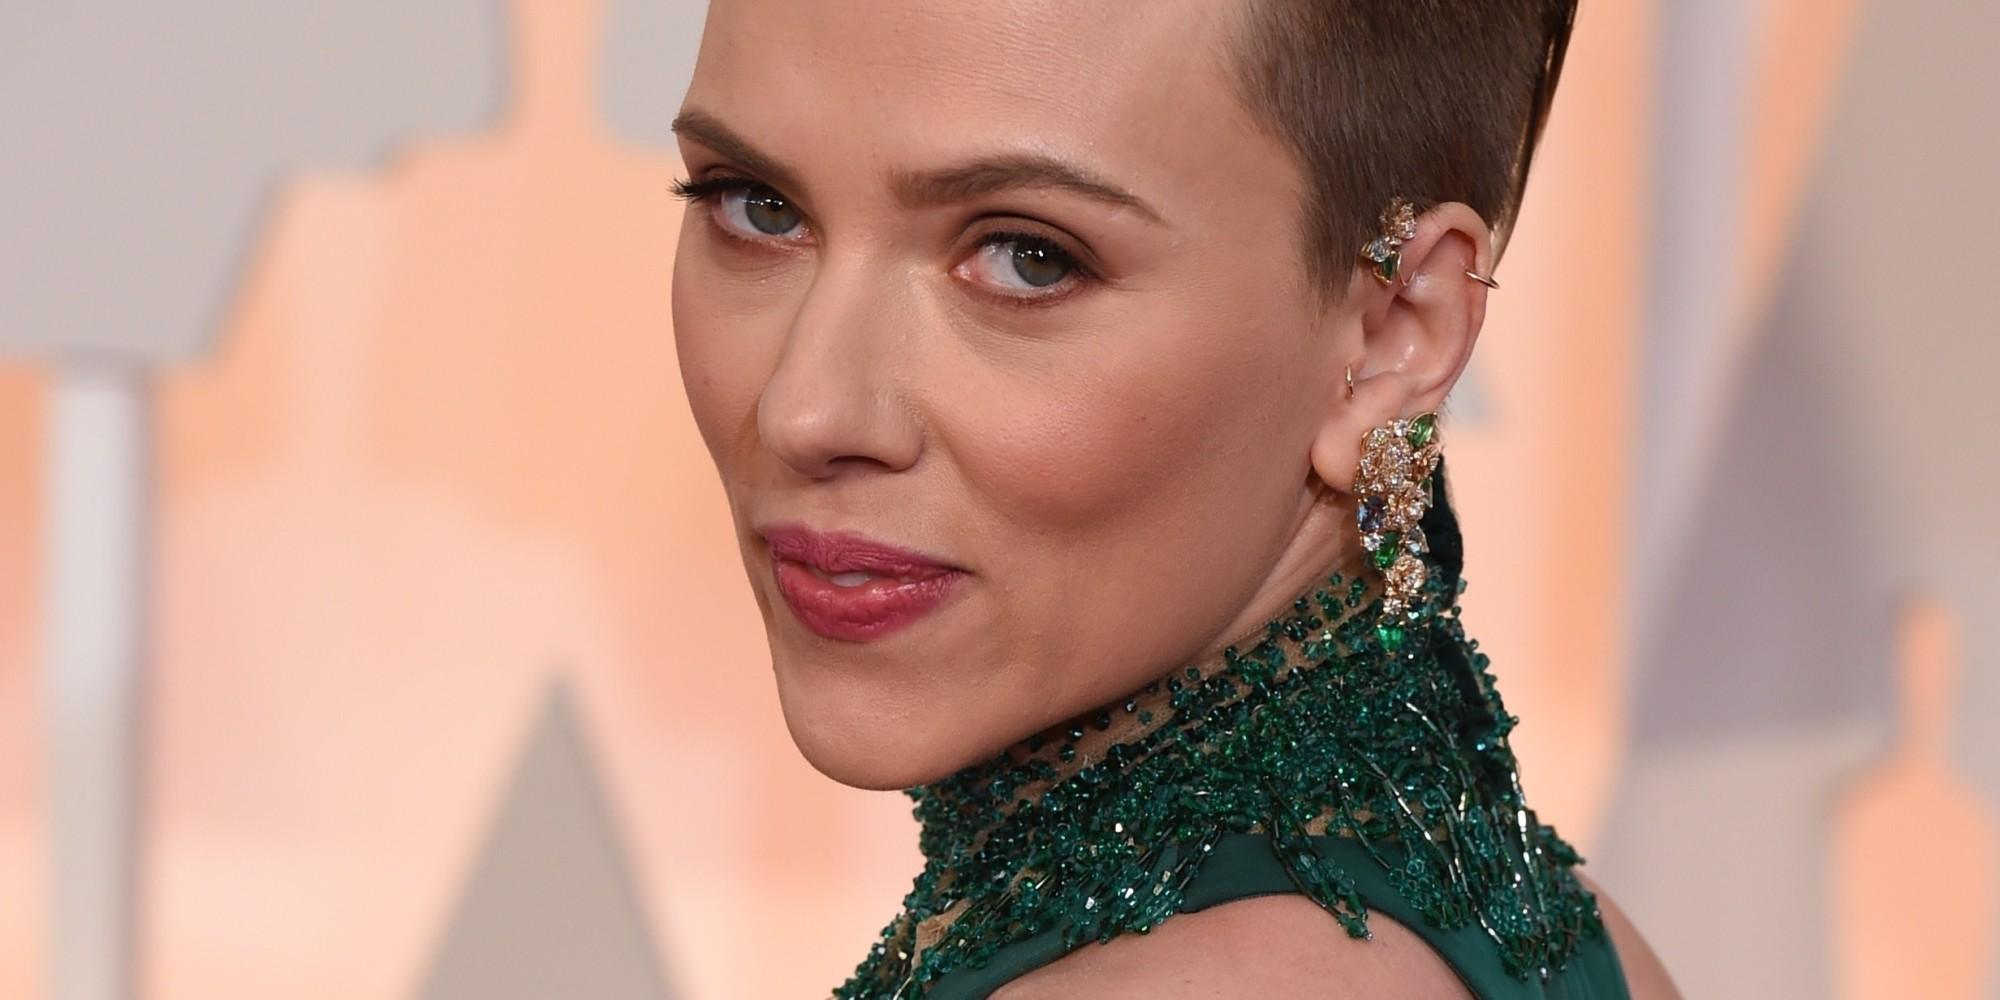 New Mom Scarlett Johansson Wows At The Oscars | HuffPost скарлетт йоханссон